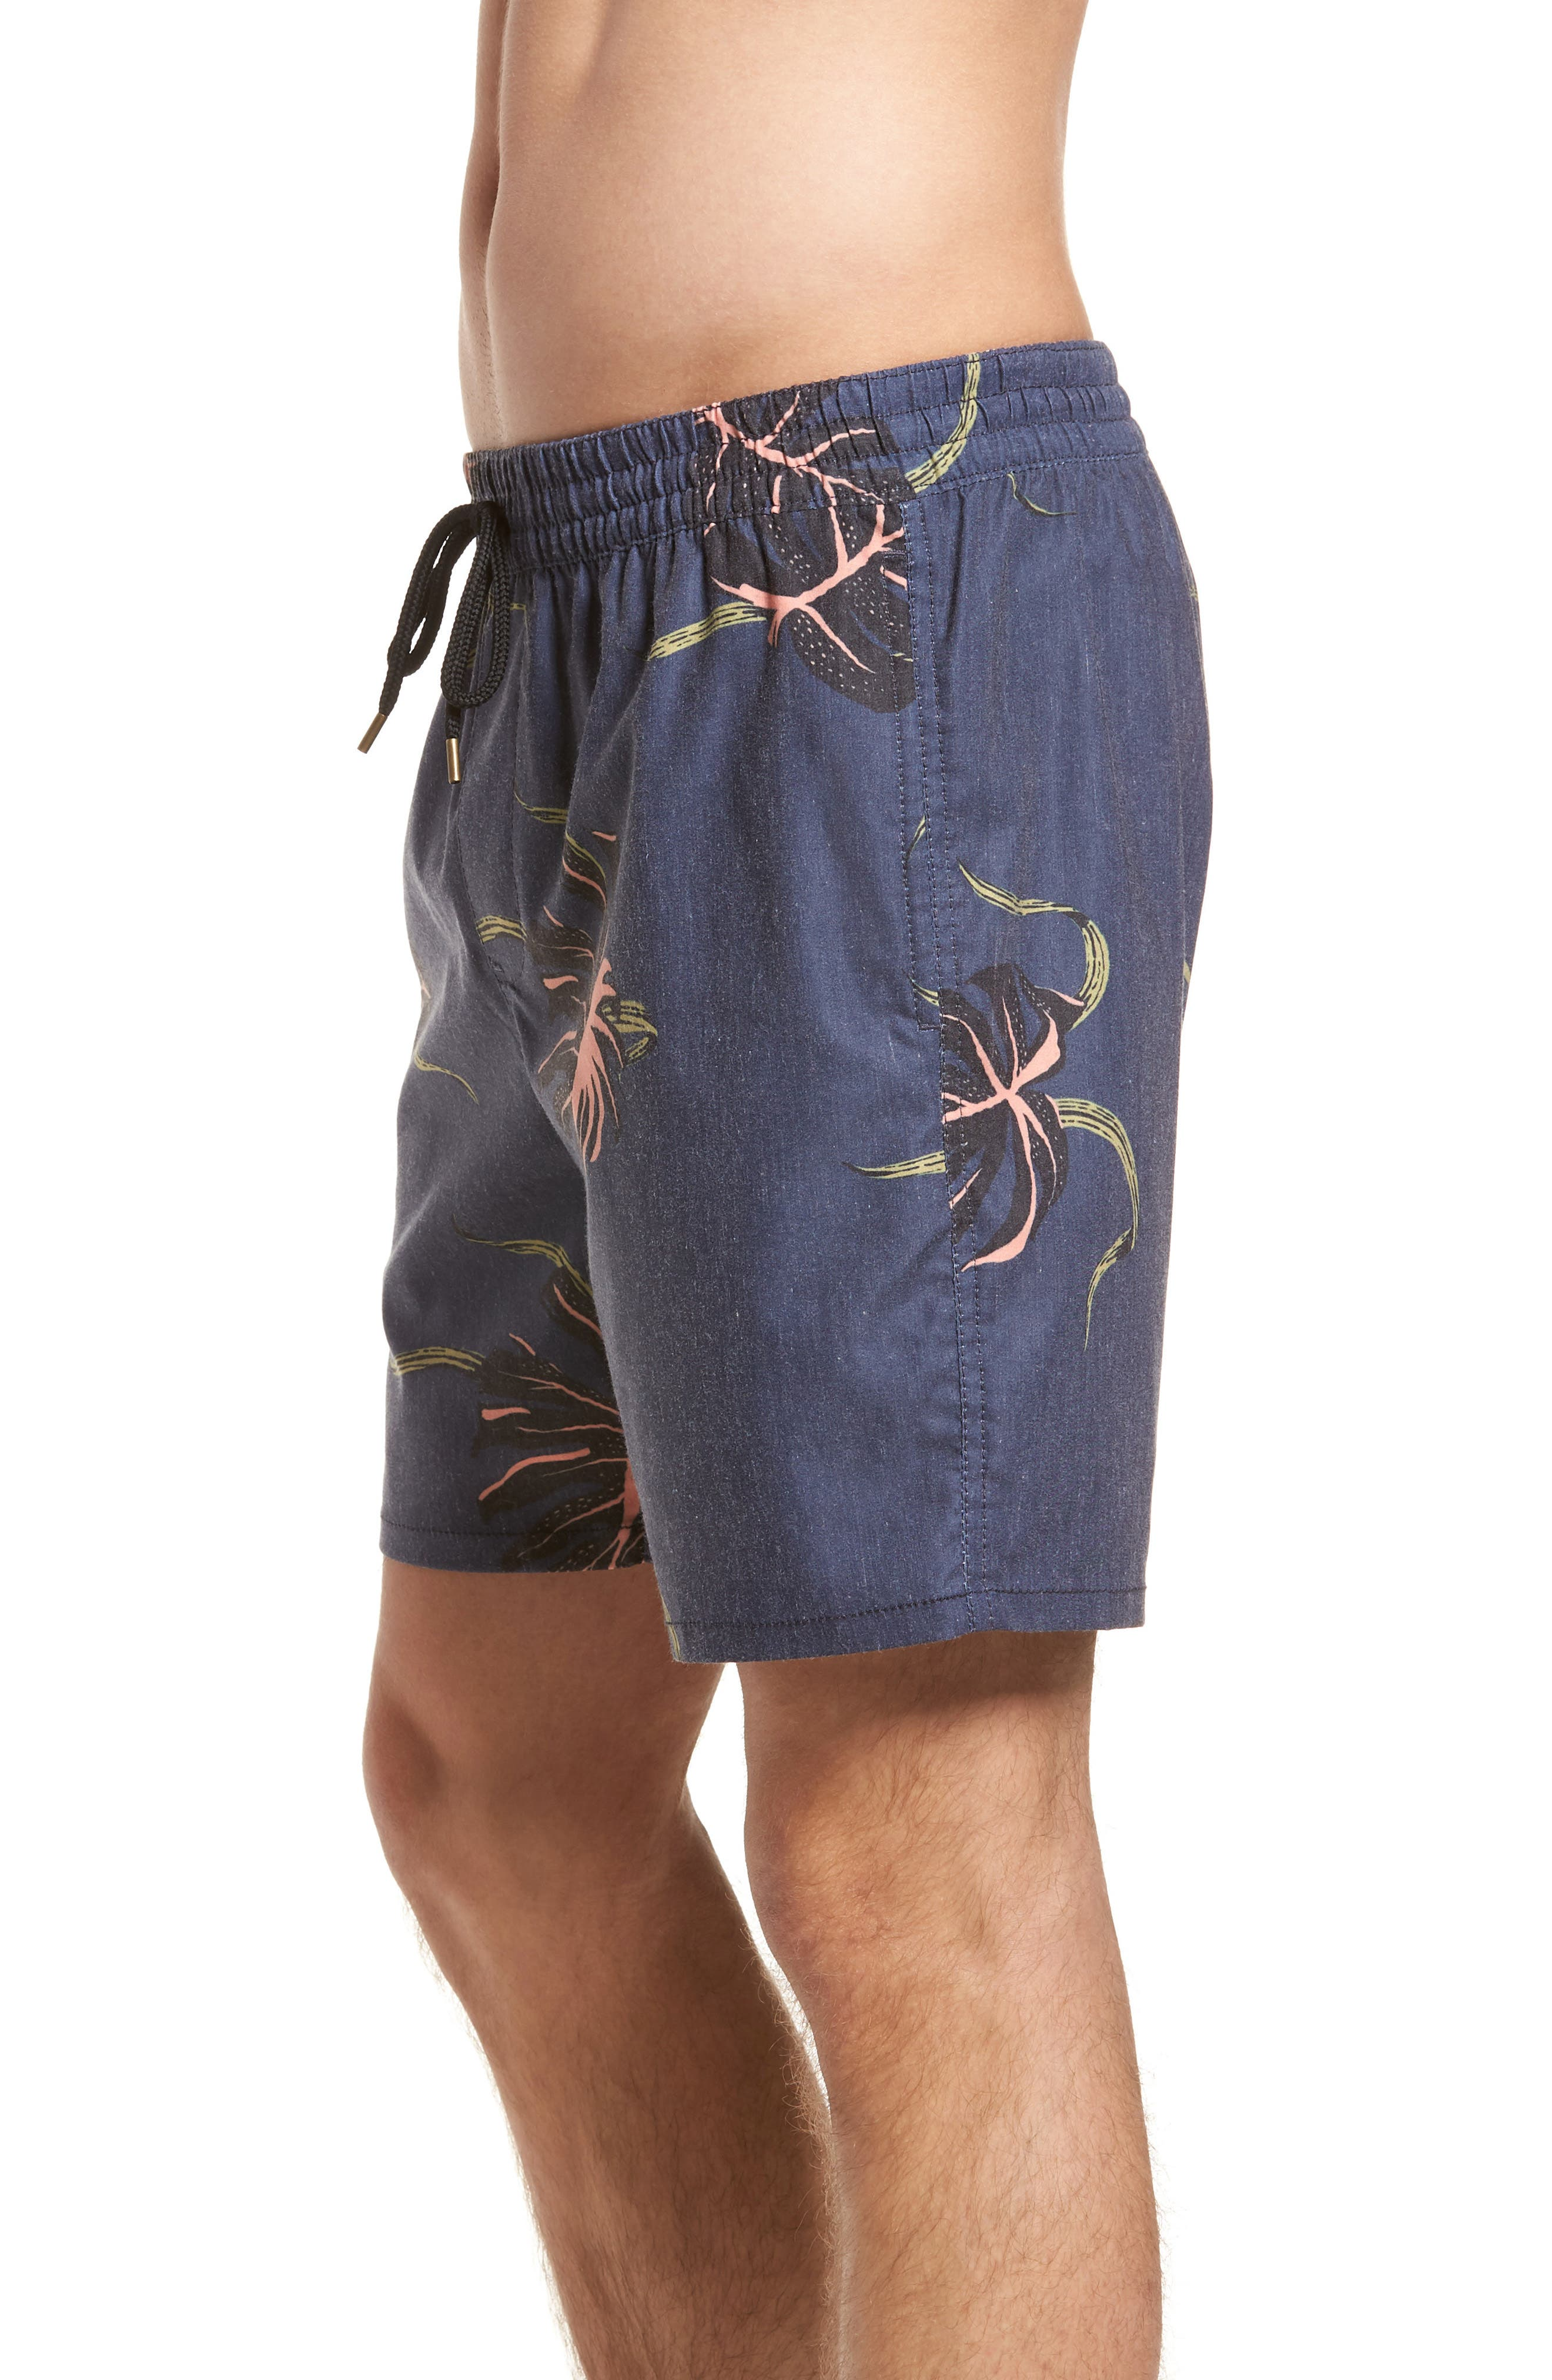 Pointer Pool Shorts,                             Alternate thumbnail 4, color,                             Moonlight Blue